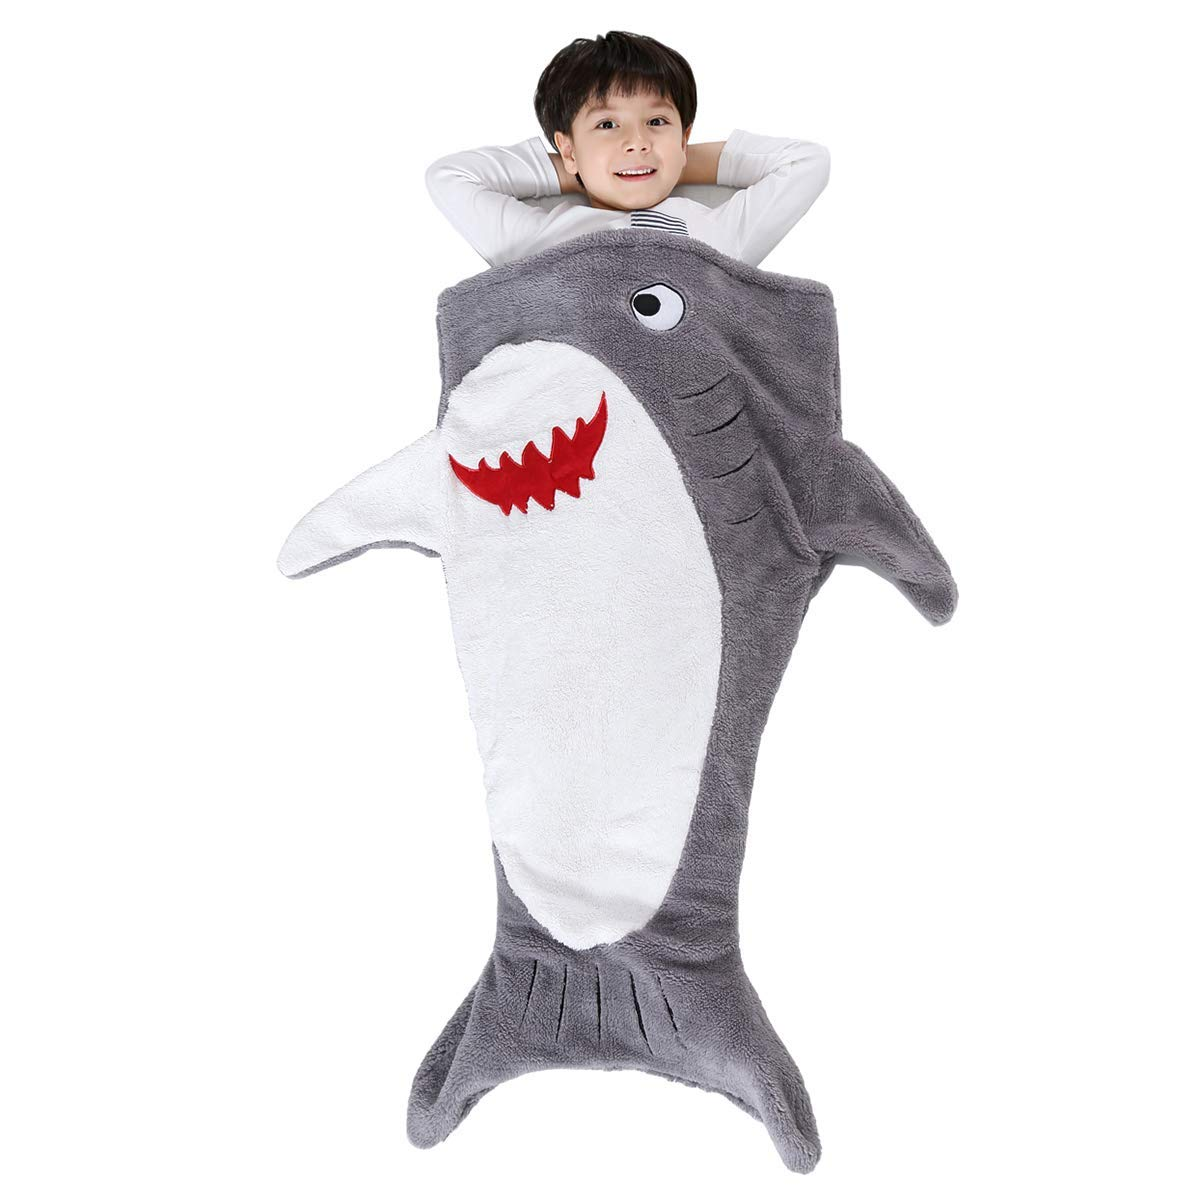 SINOGEM Shark Tail Blanket - Plush Animal Sleeping Bag Blanket Shark Toys for Kids by (Grey)